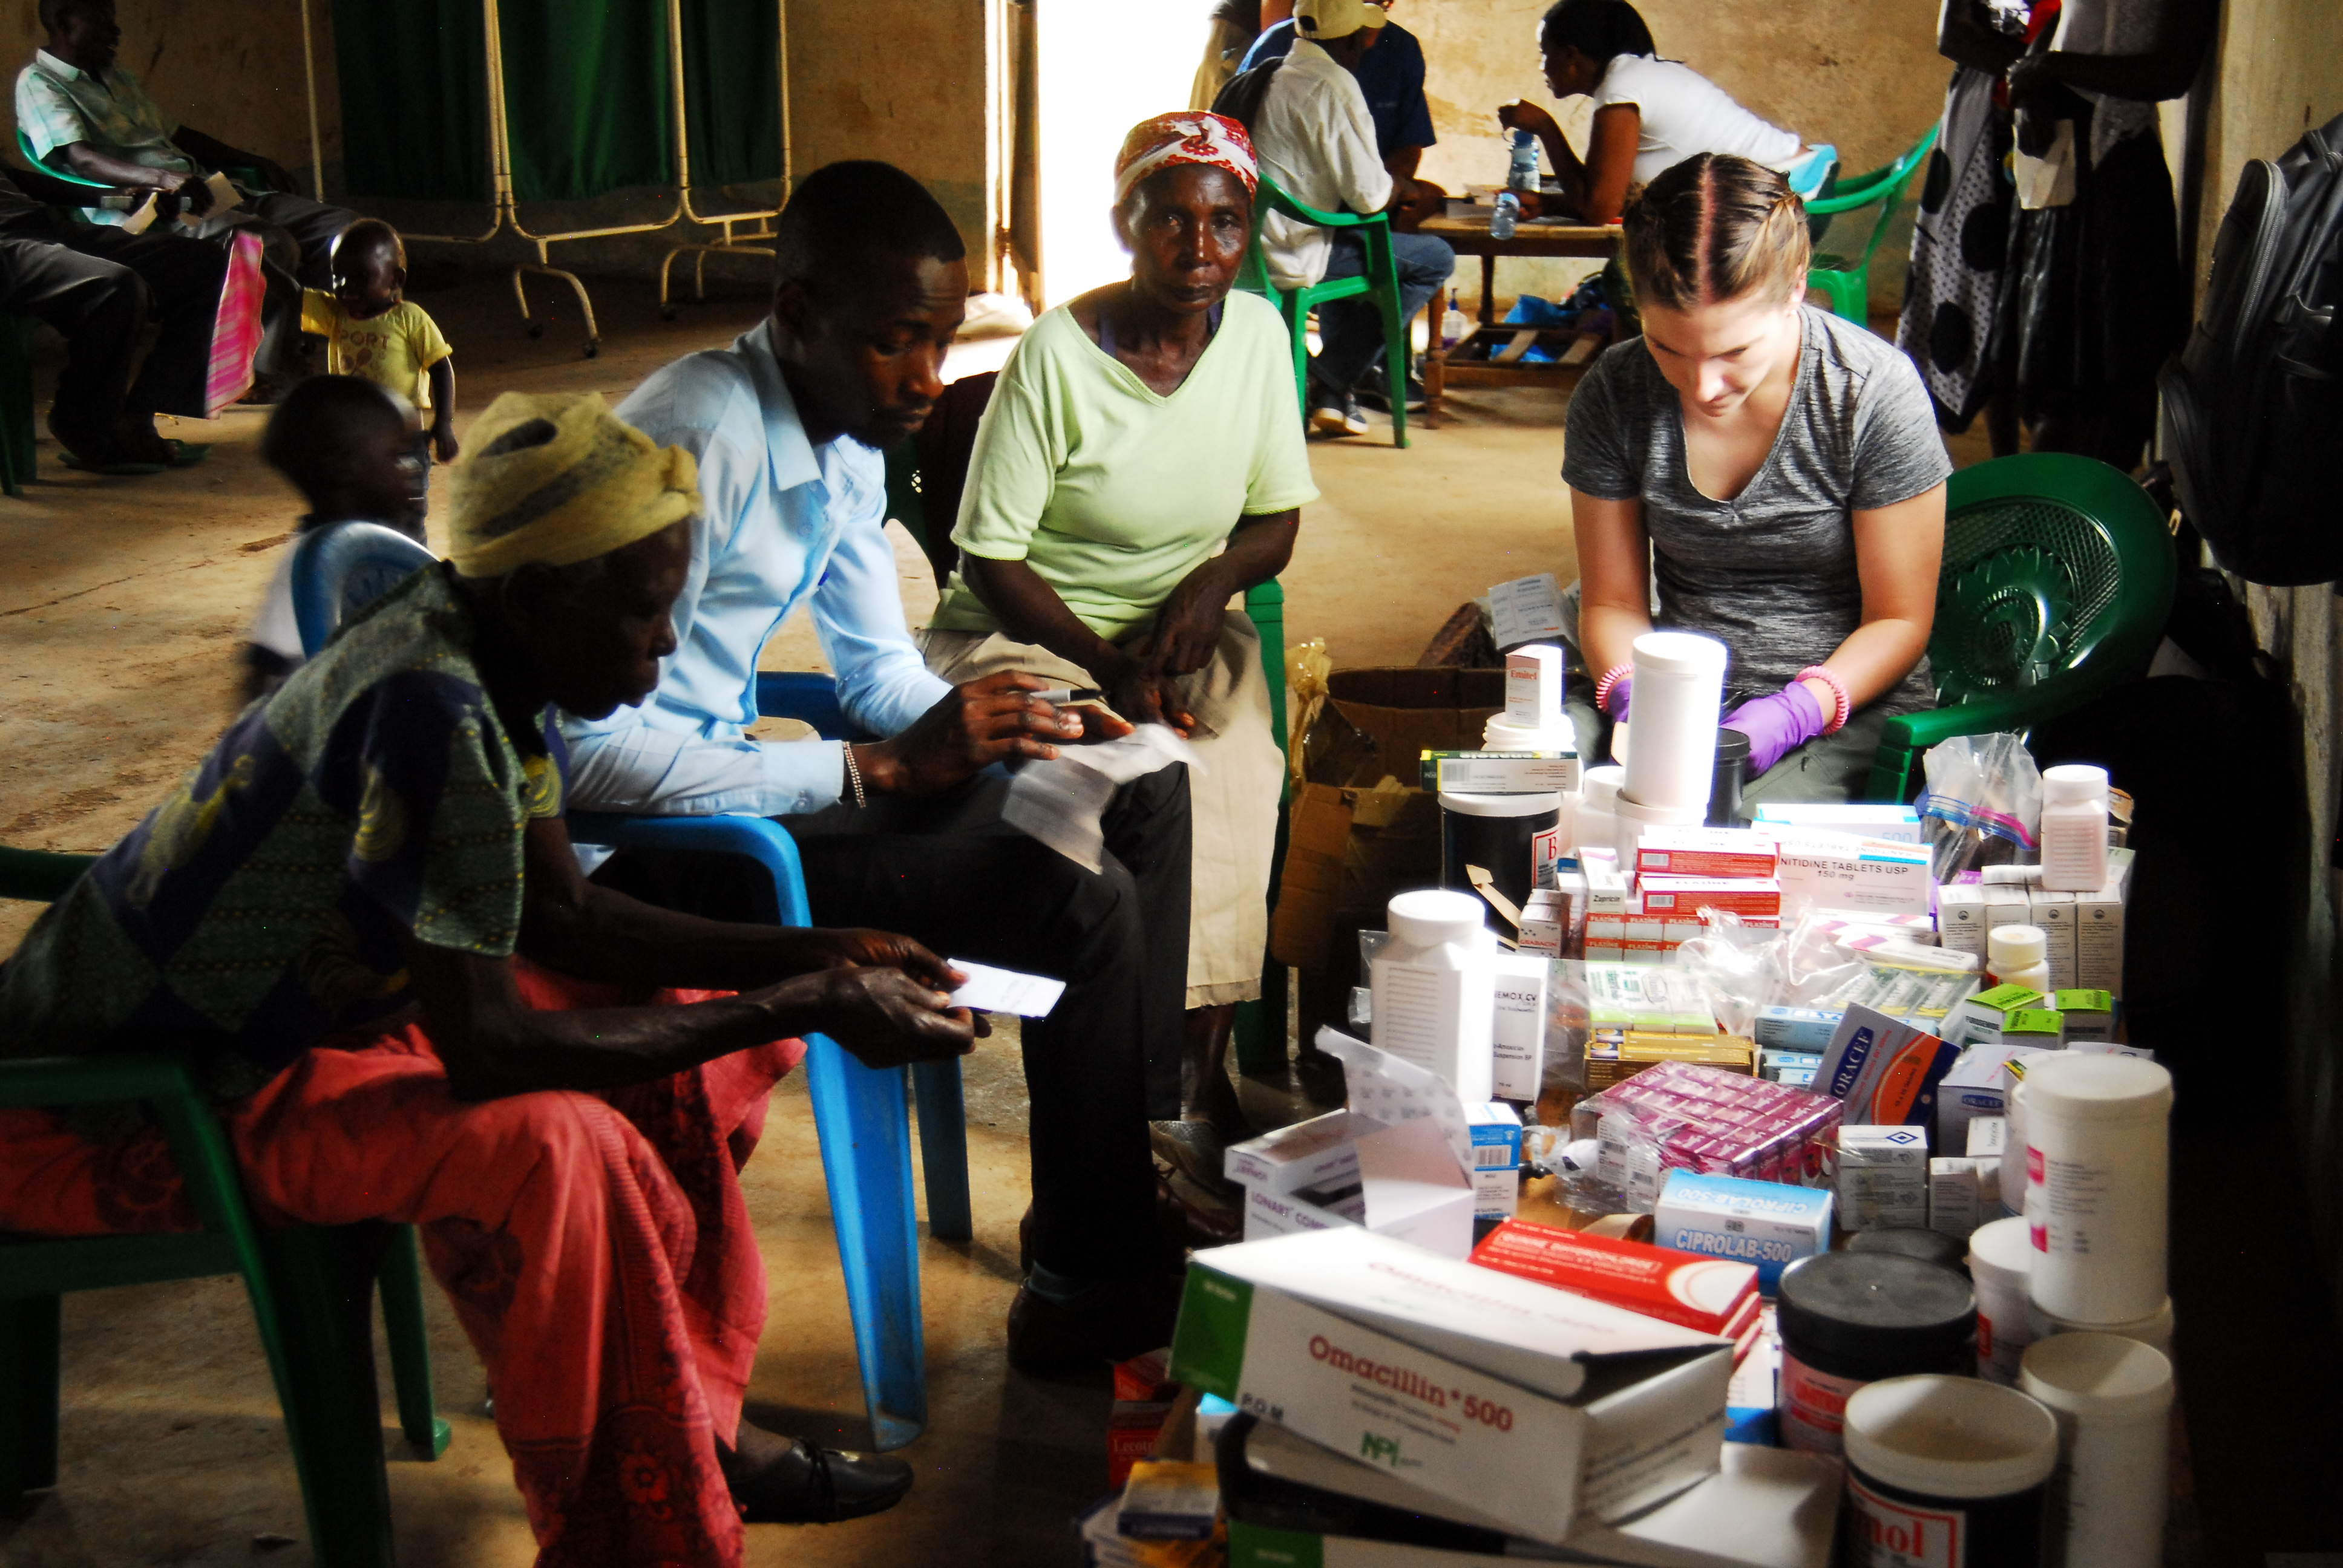 Courtney dispensing medicine at the mobile clinic